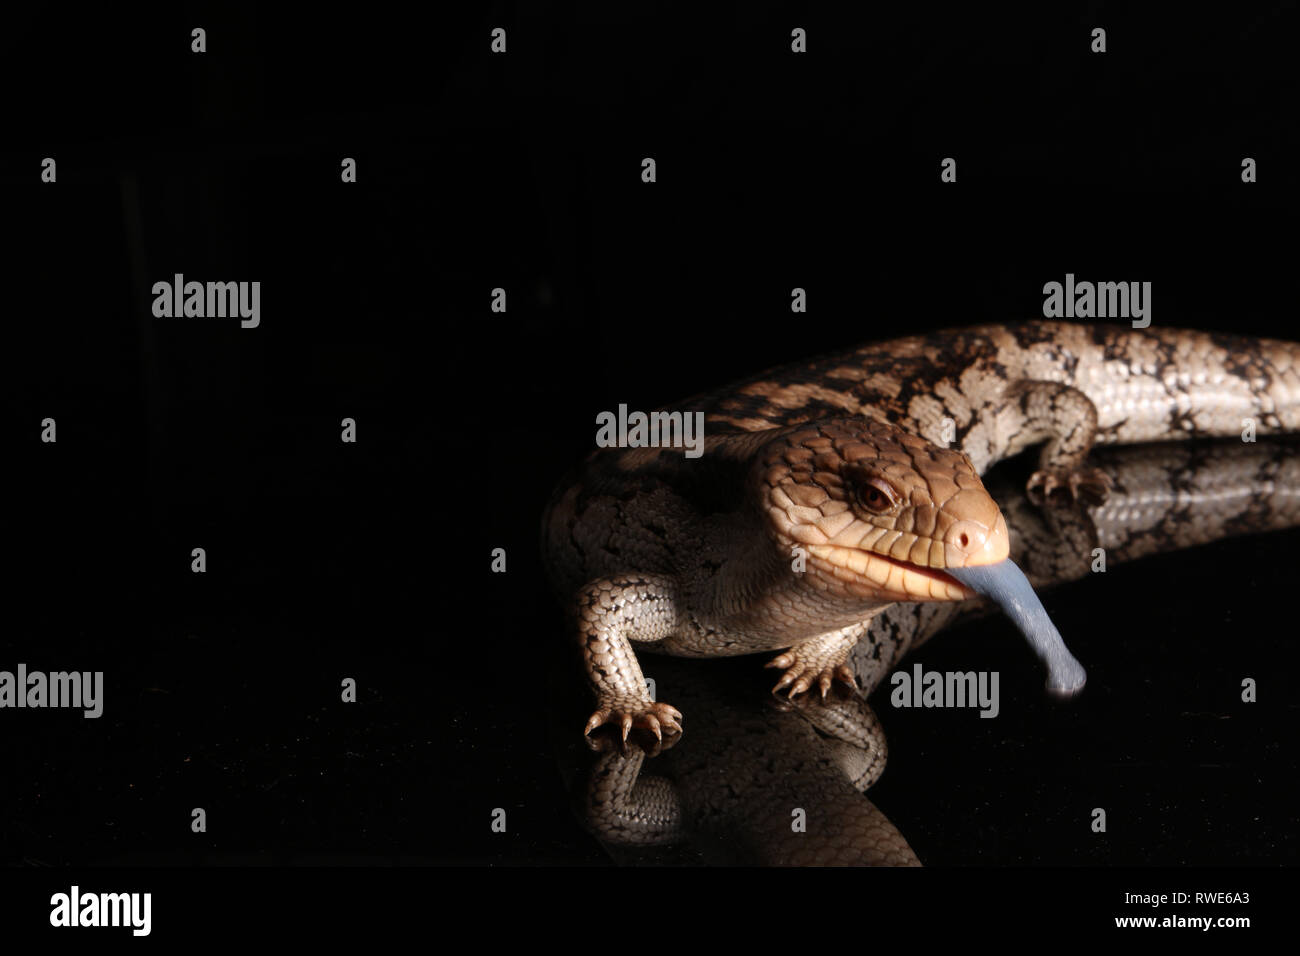 Blue Tongued Lizard with tongue out on black background - Stock Image